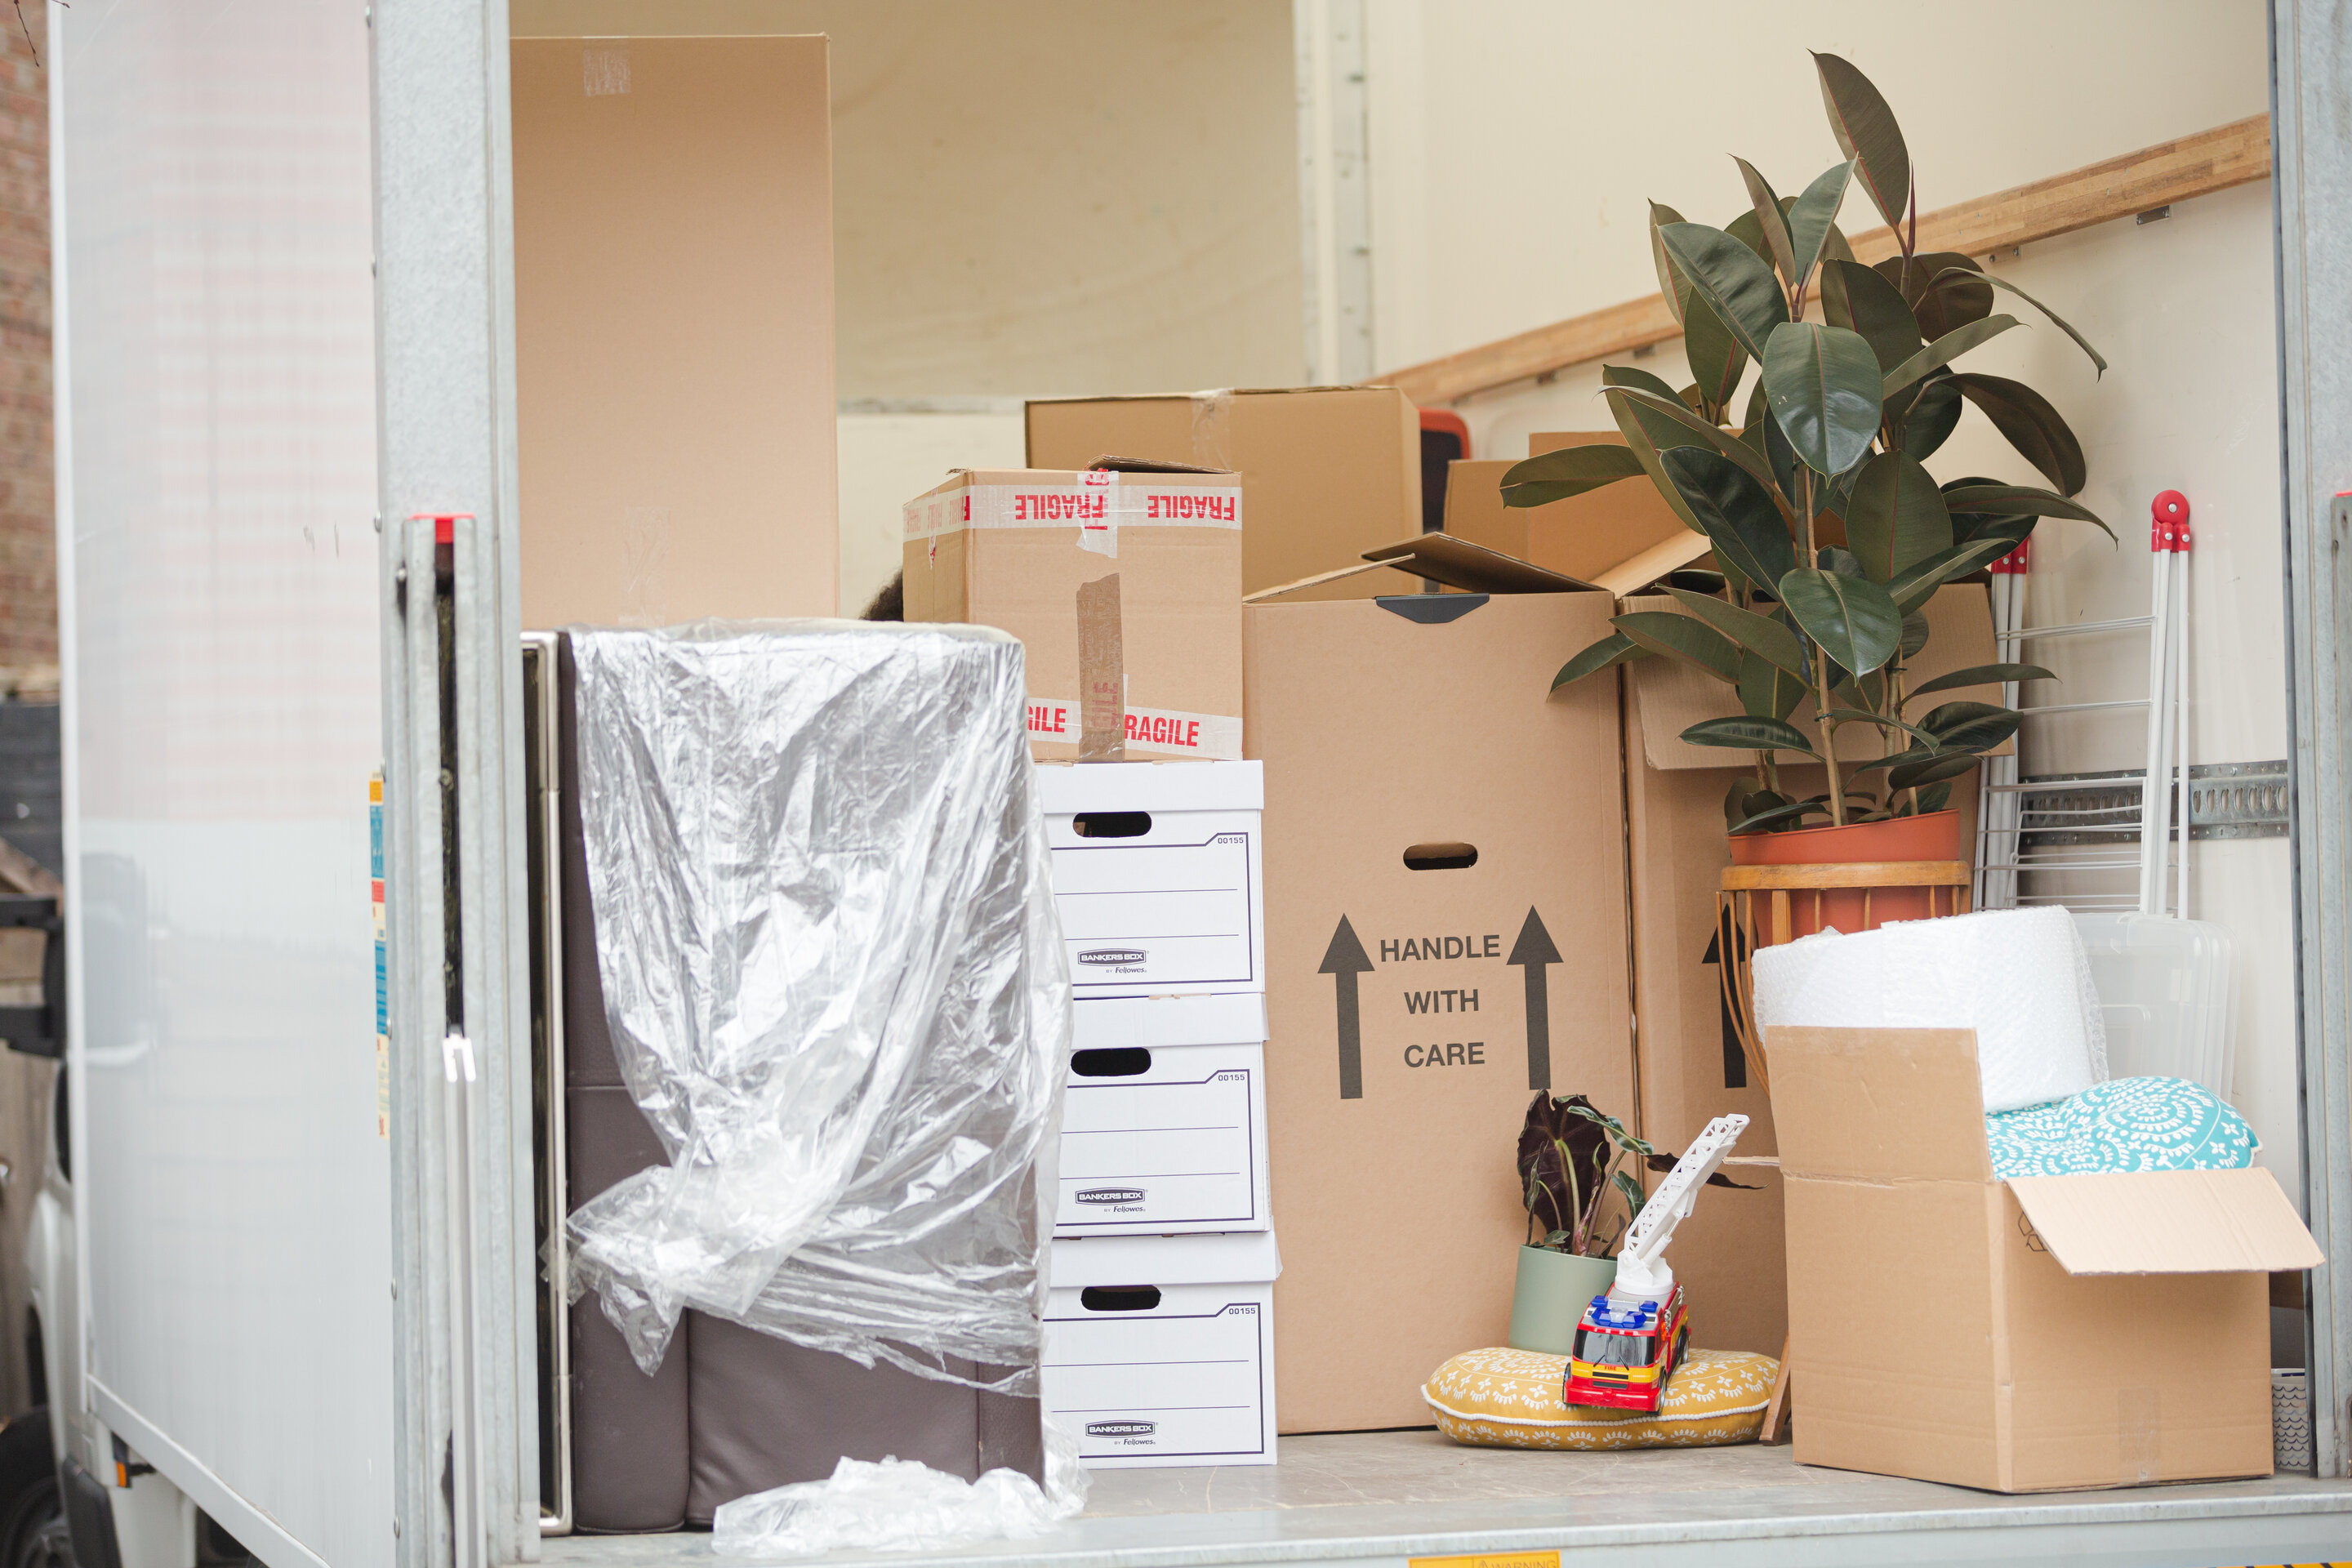 The back of an opened white moving truck with several home belongings inside like a house plant, toy truck, and several cardboard boxes.